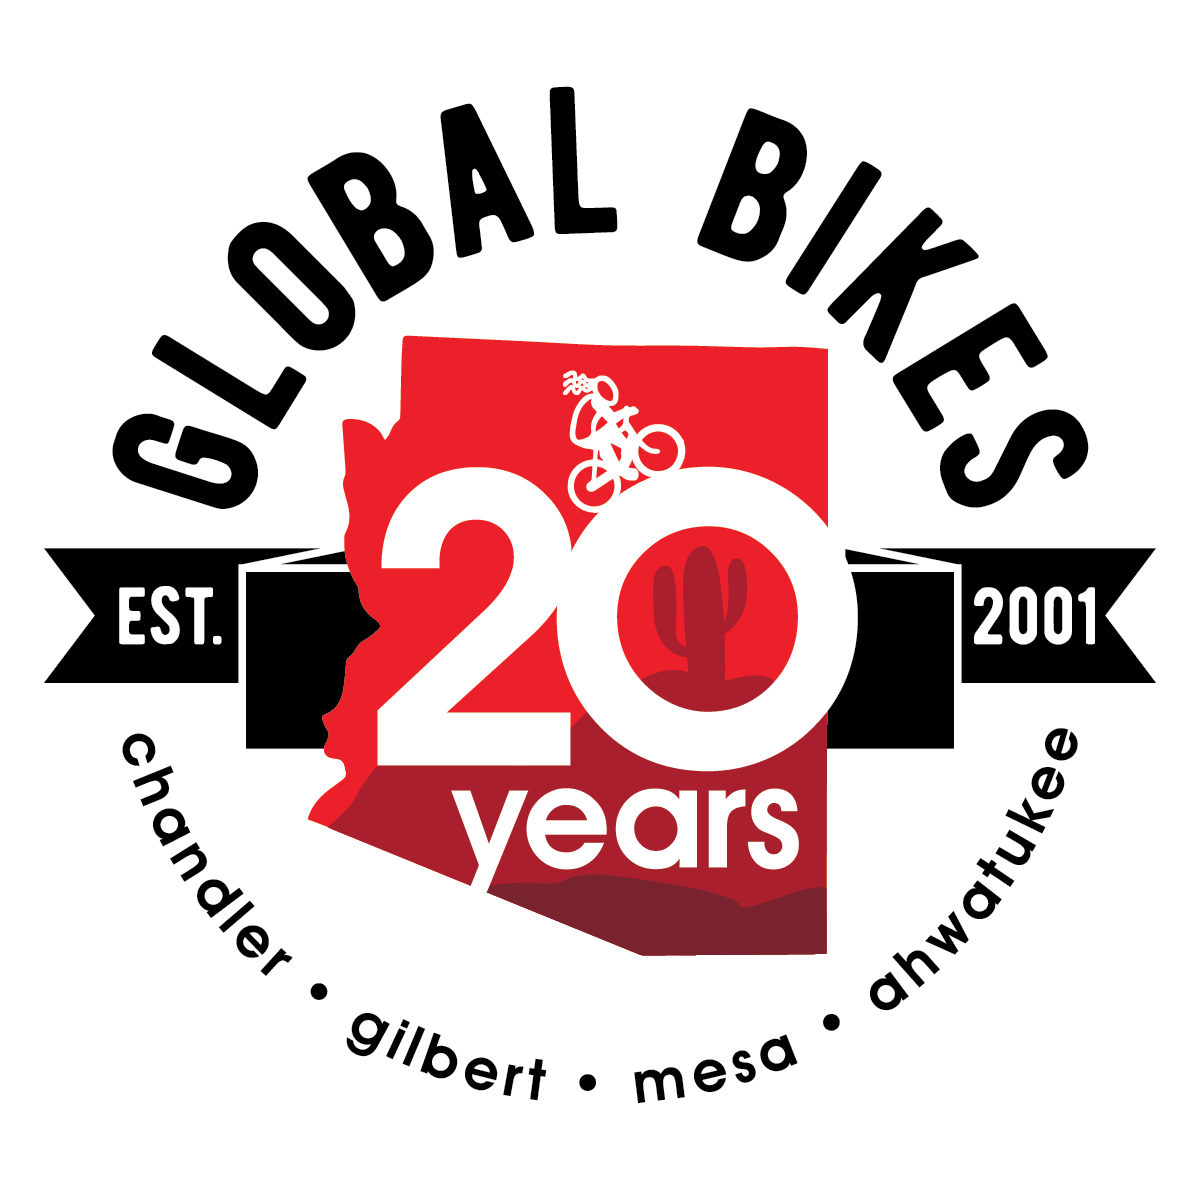 Global Bikes & E-Bikes 20 year anniversary logo - we've got a bike shop near you